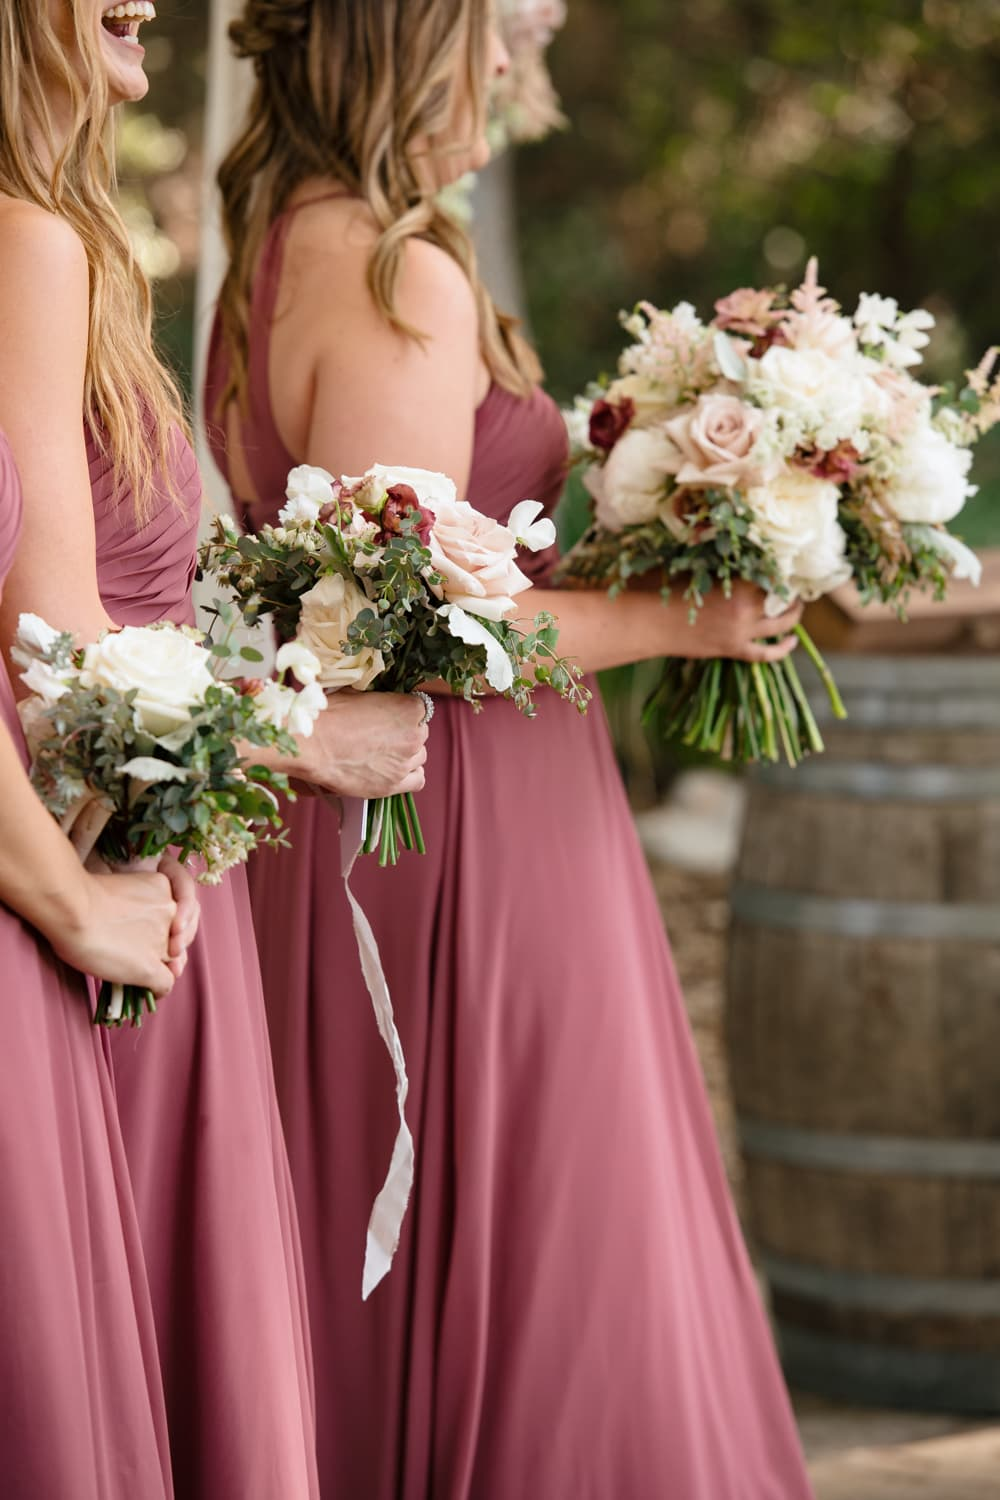 Bridesmaids bouquets at The Stone House in Temecula, CA